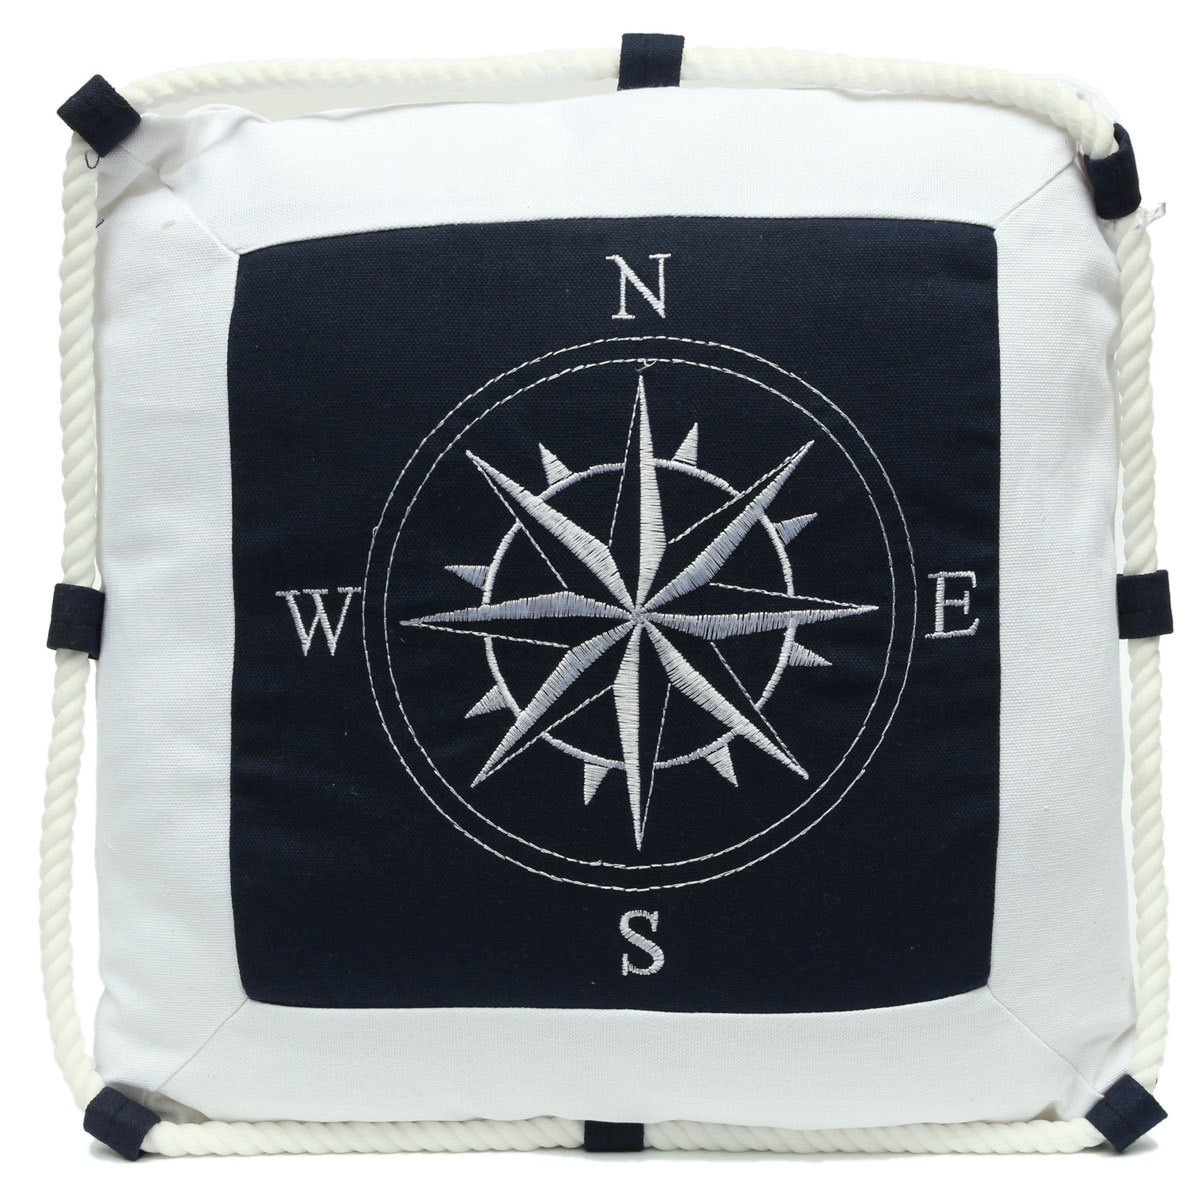 Nautical Throw Pillow Cases : Mediterranean Decorative Ocean Nautical Throw Pillow Case Cushion Cover + Inner eBay